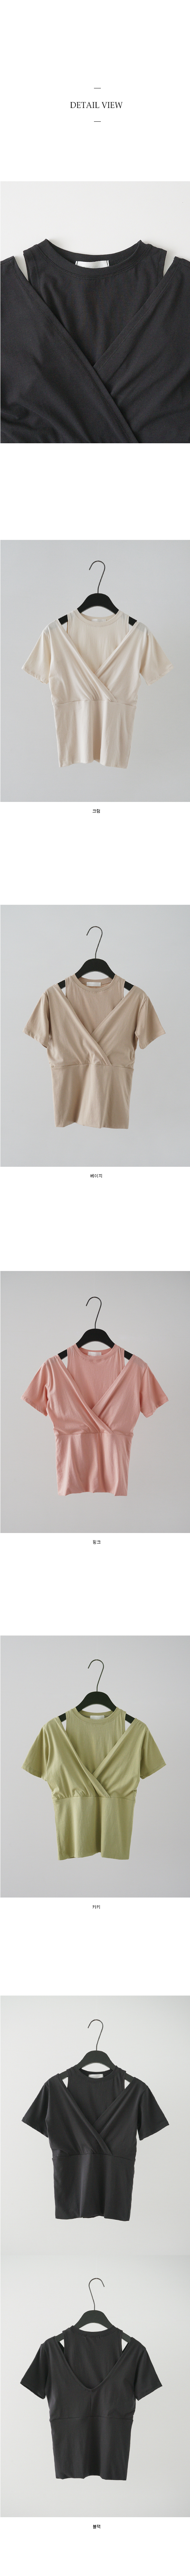 all-in-one layered top